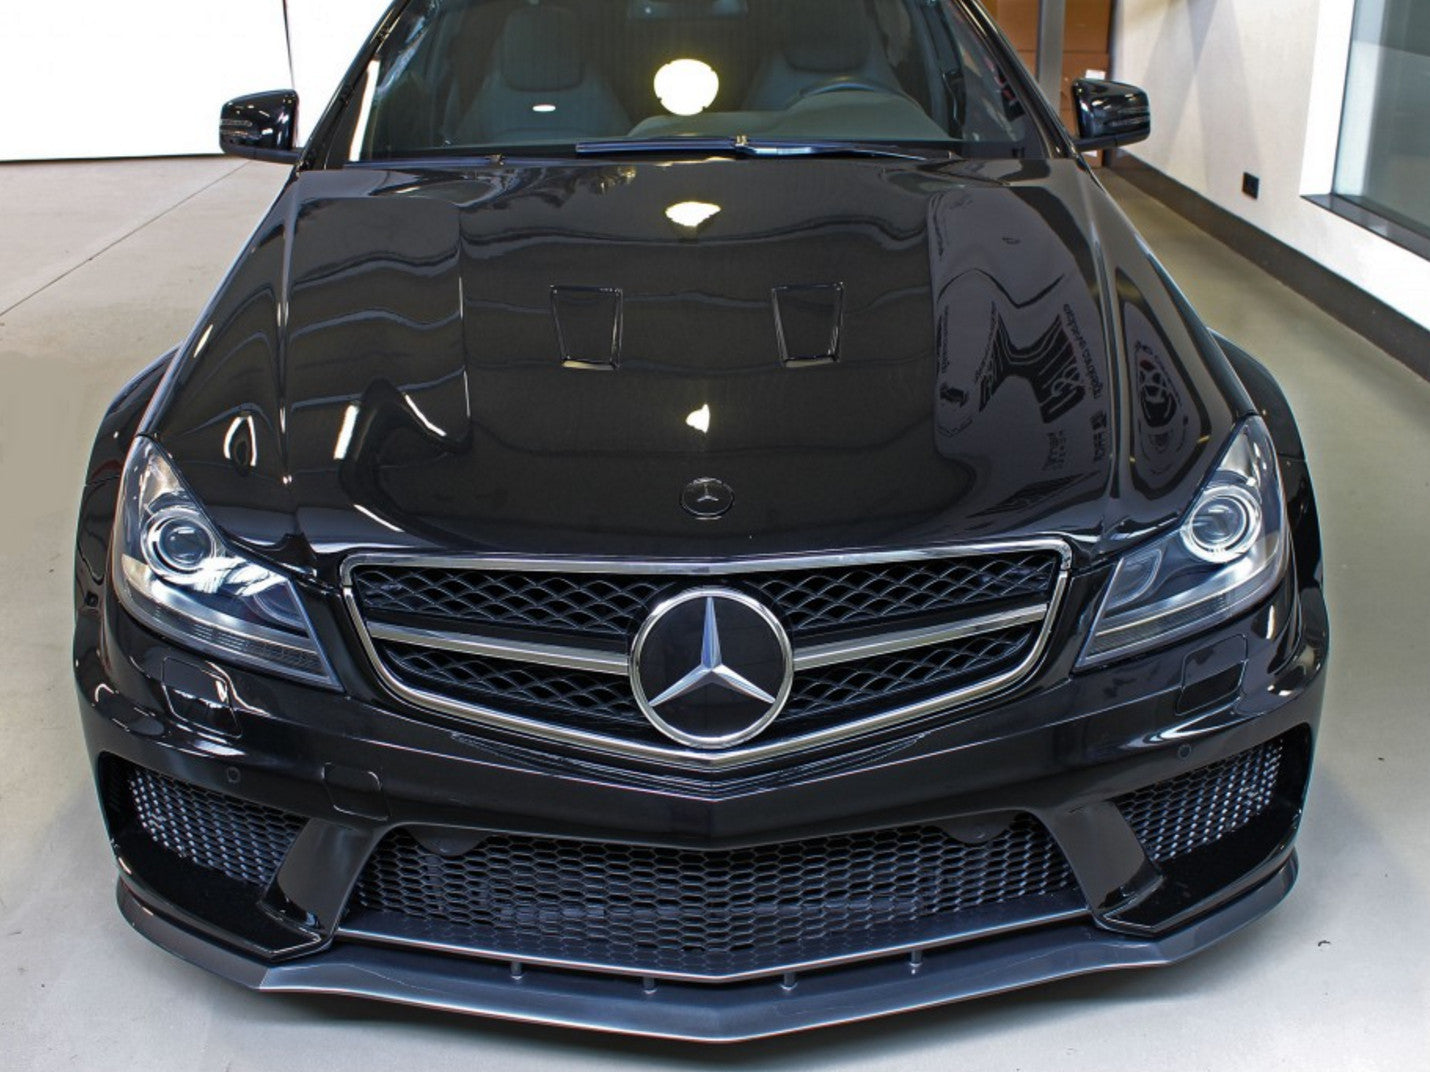 BLACK SERIES WIDE BODY KIT - W204 C CLASS AMG C63 COUPE / Body Kit Only / In Full - BODY KIT - Yomato Carbon - Montreal Canada